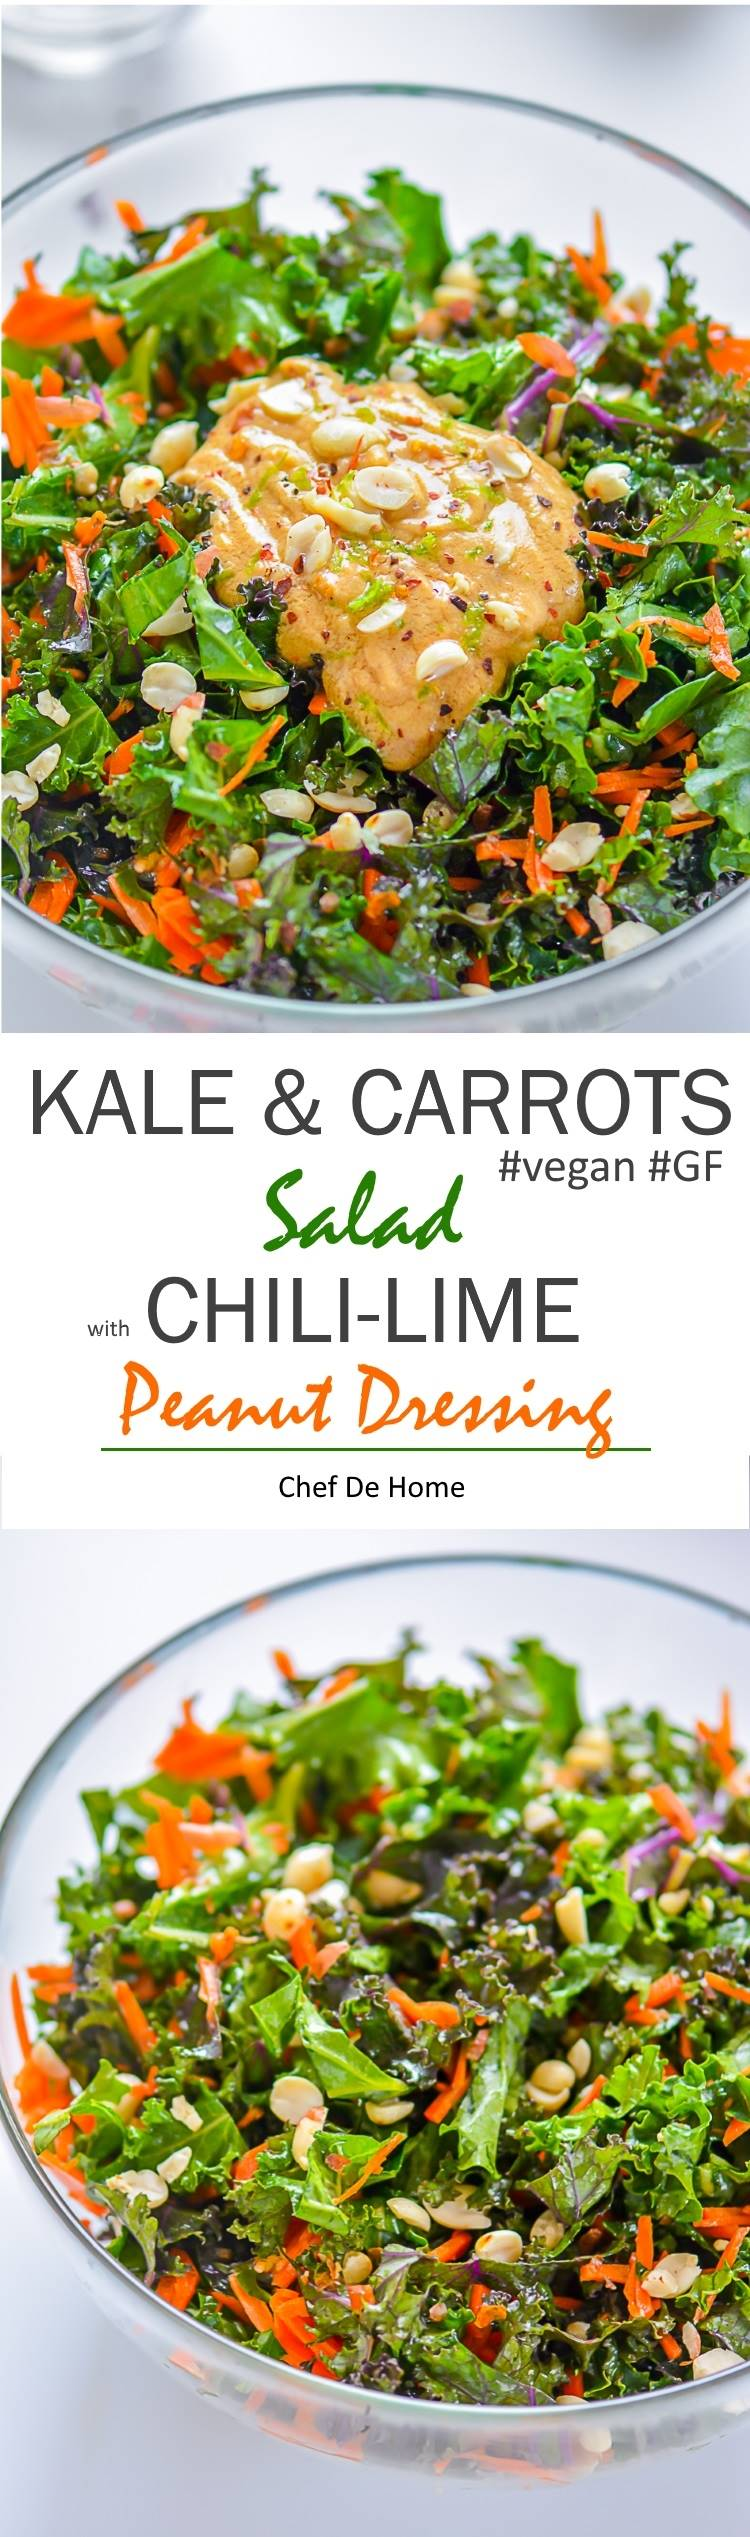 Healthy Vegan Kale and Carrot Salad dressed in vegan and gluten free chili lime peanut dressing | chefdehome.com